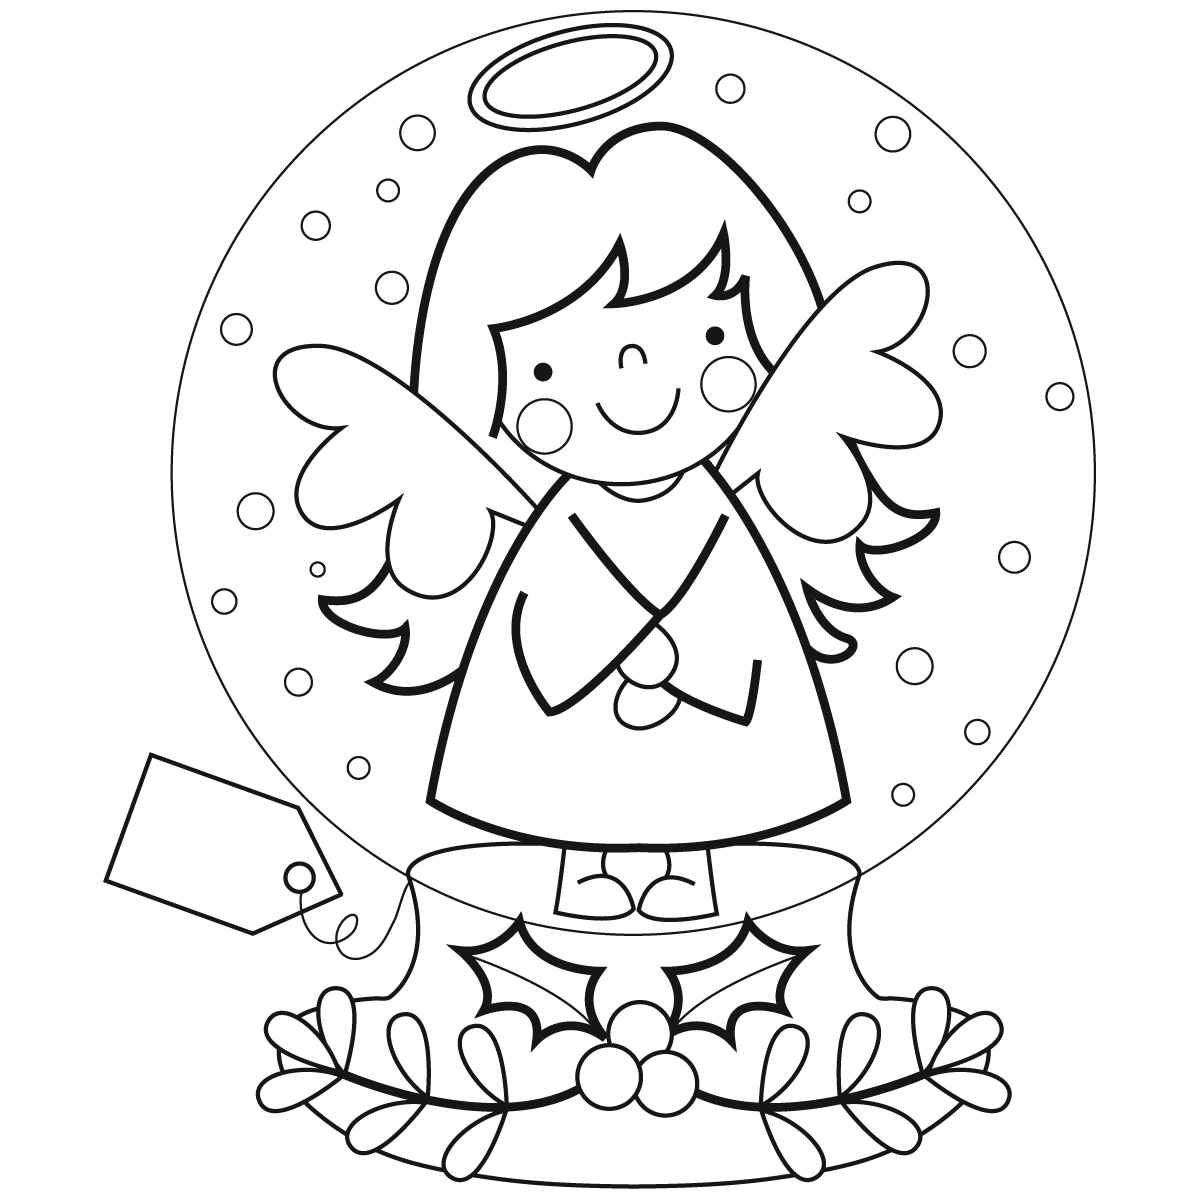 If I Lived Snow Globe Coloring Page